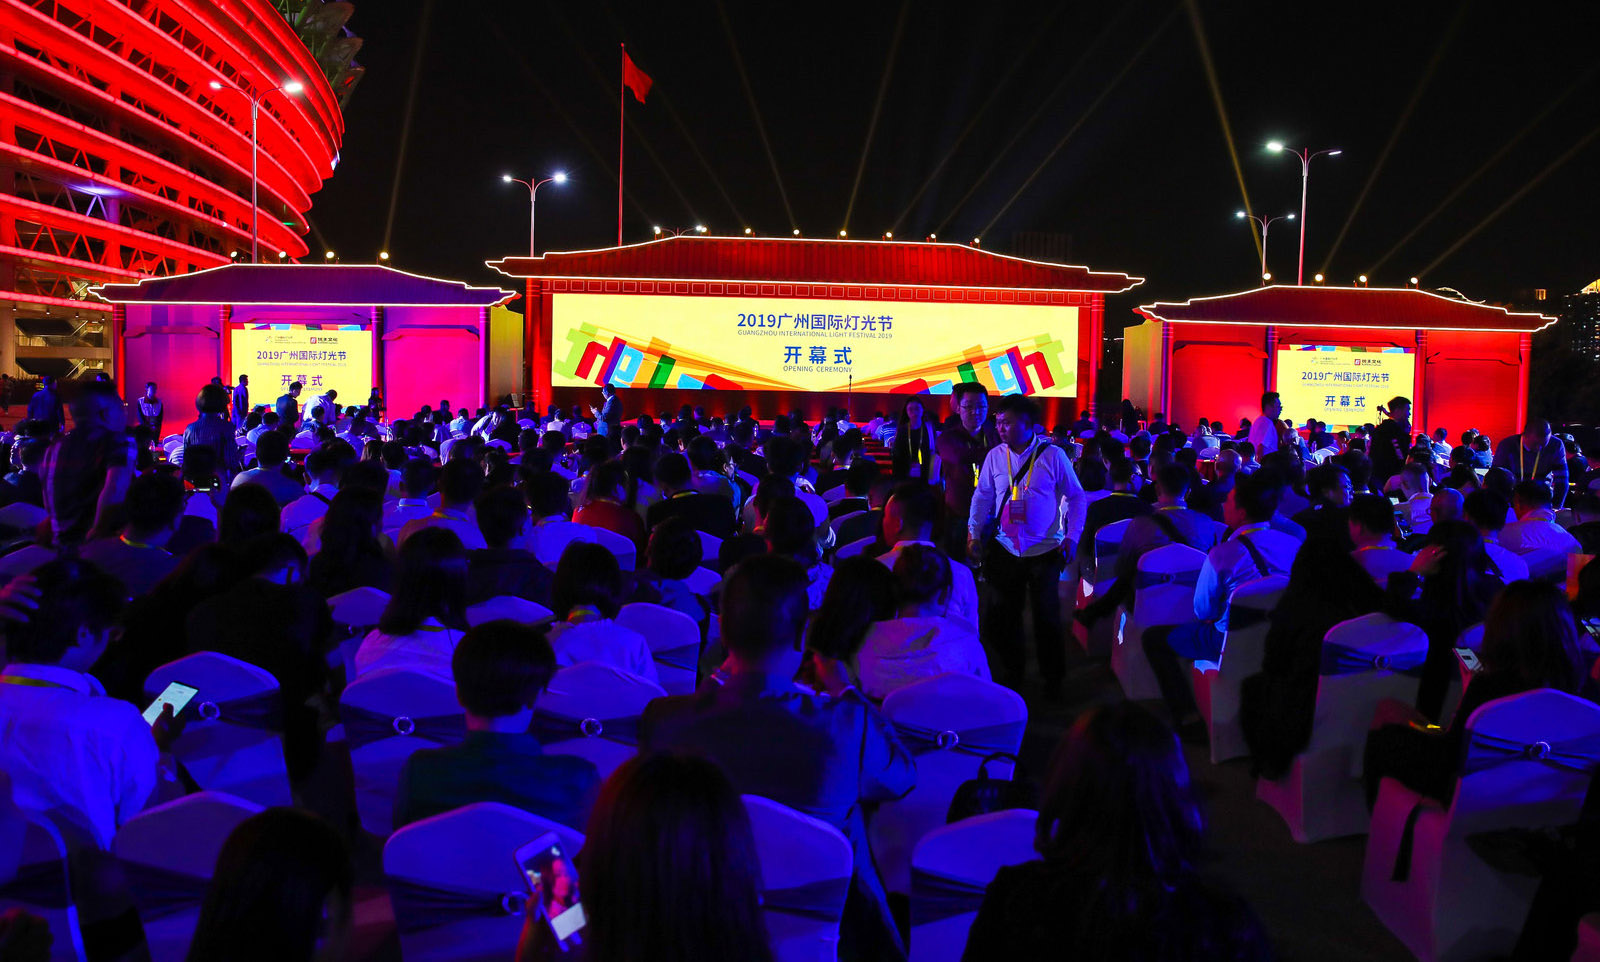 The 9th Guangzhou International Light Festival was held!